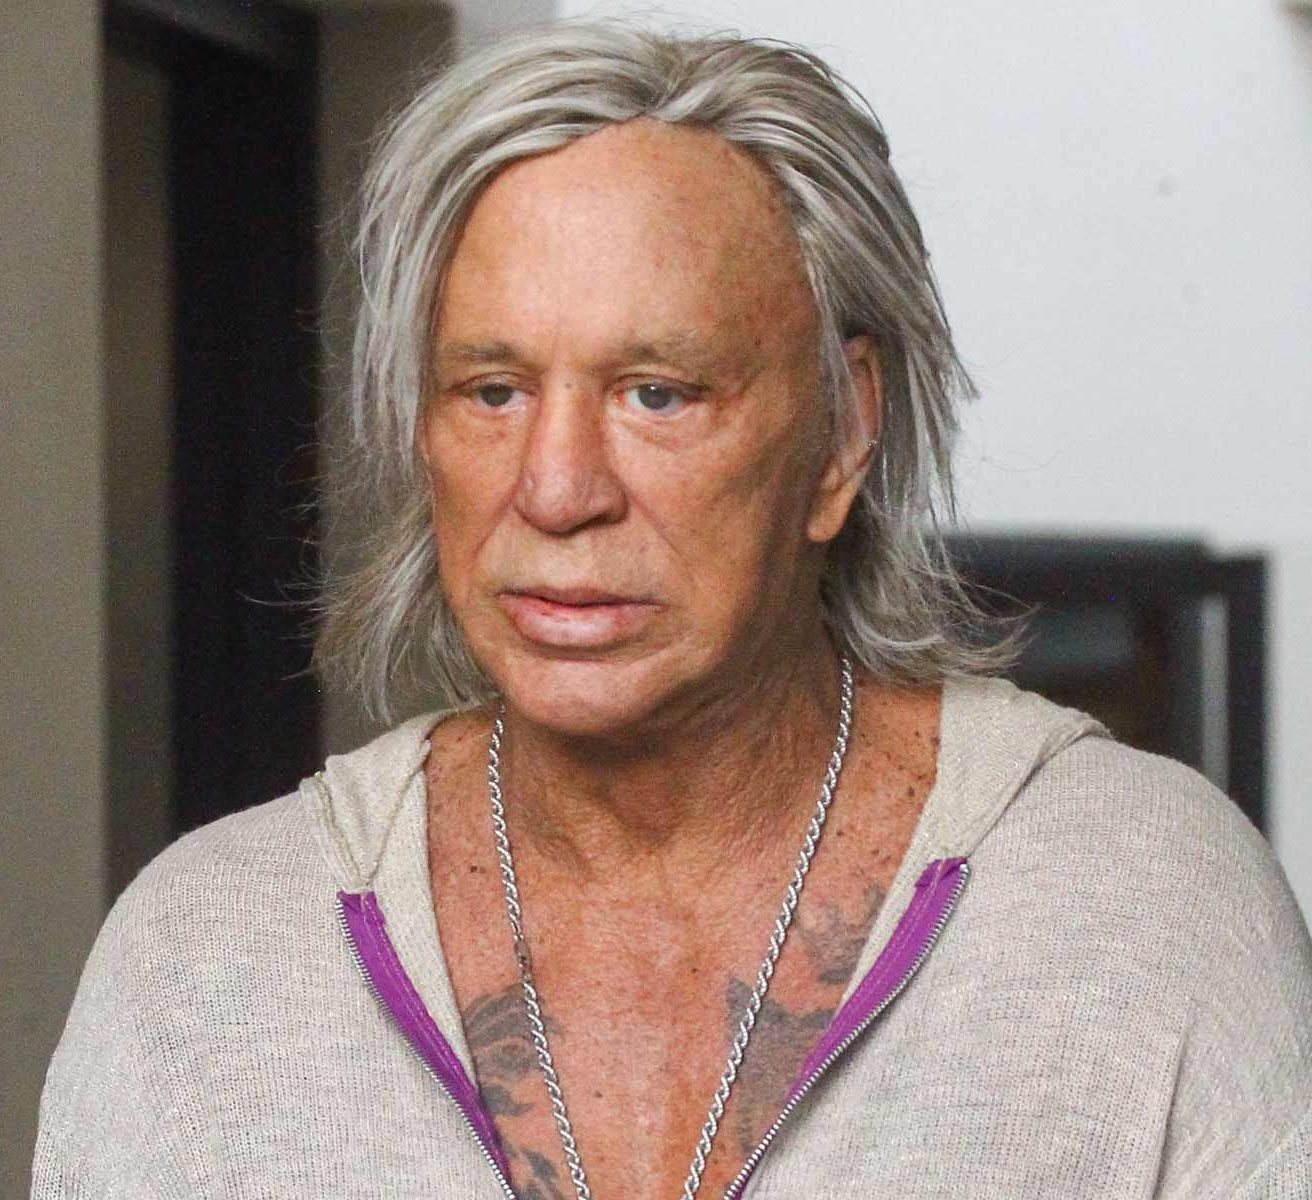 9 18 e1600775211420 20 Things You Never Knew About Mickey Rourke